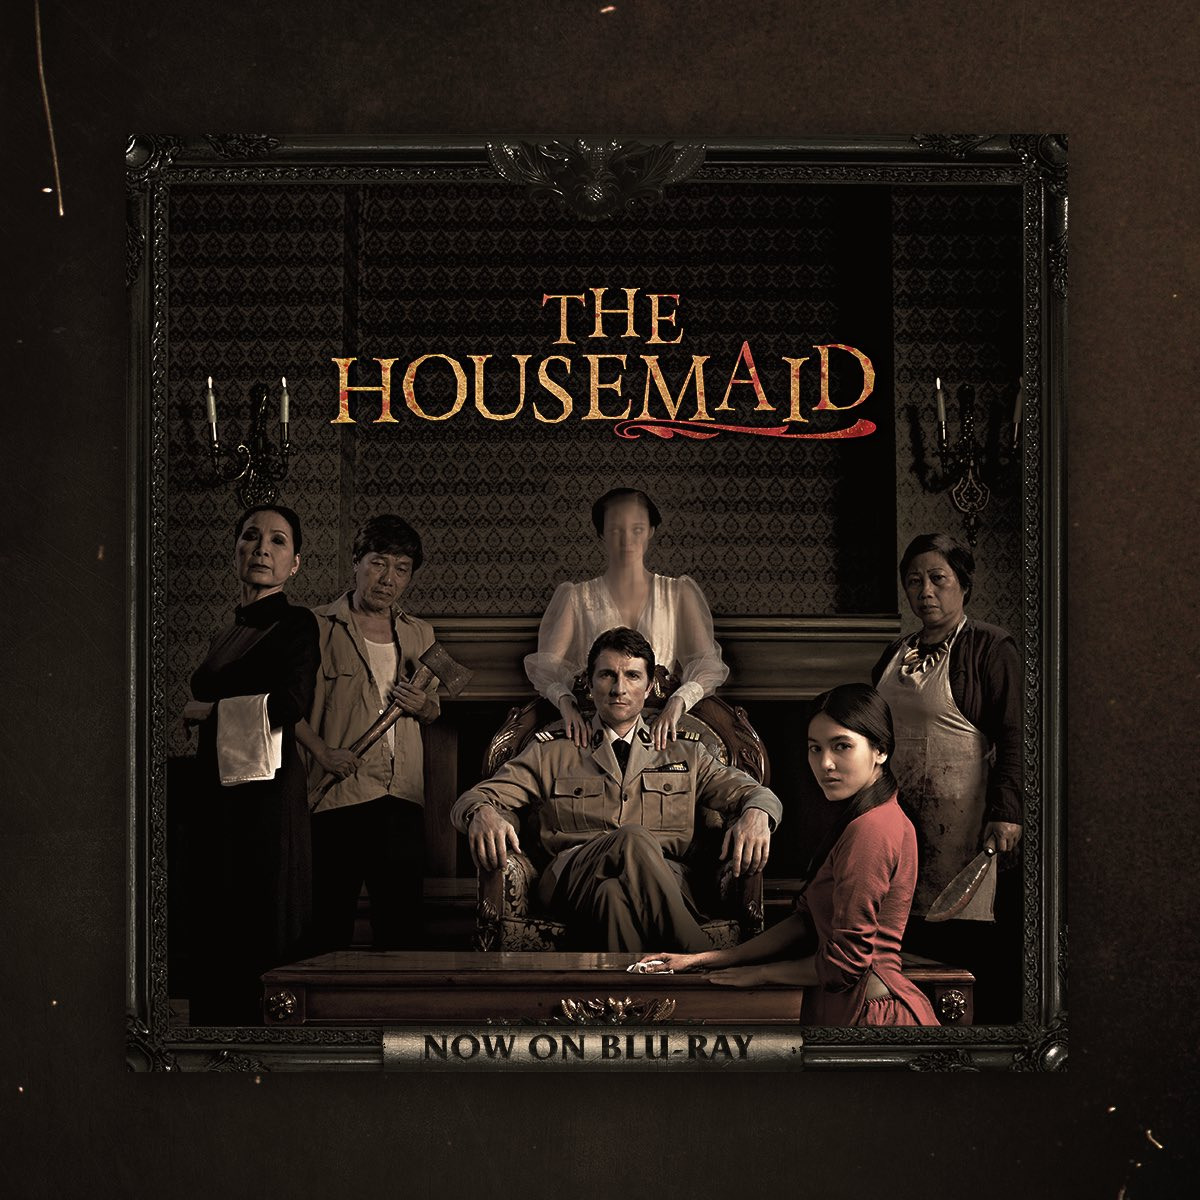 Wrathful spirits have awakened. #TheHouseMaid is now available on digital and @Scream_Factory Blu-ray.